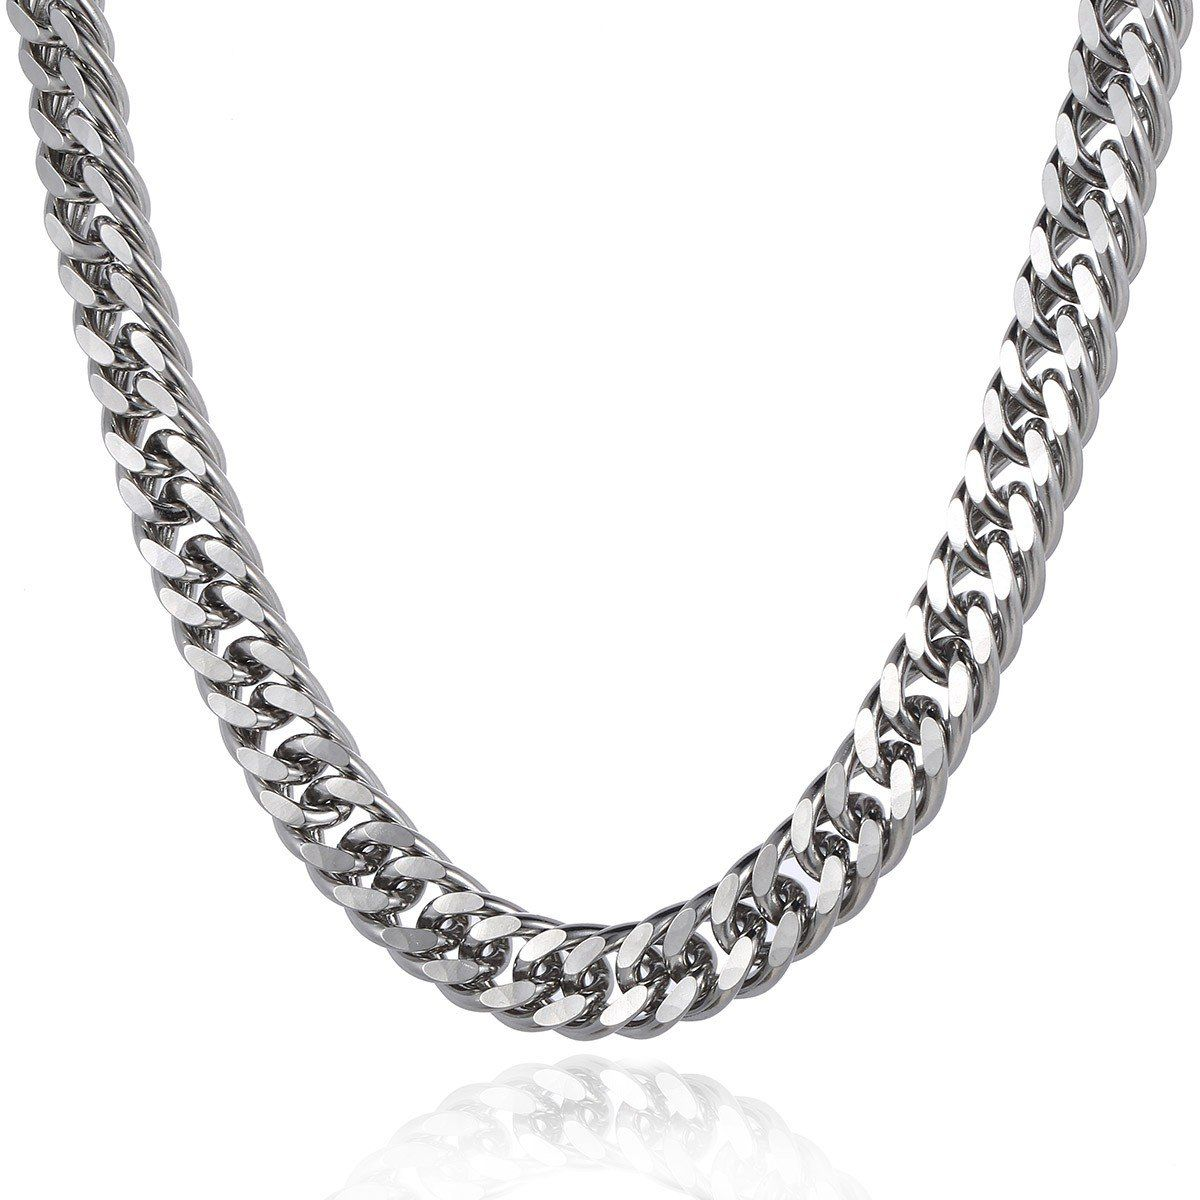 Trendsmax 15mm Mens Boys Silver Tone Rombo Curb Cuban Link Chain Necklace Stainless Steel Chain Length 18-36inch. Material: Stainless Steel. Come With a Trendsmax Bag. Measurement: Width: 15mm Length:18-36inch. Mens Chain Boys Necklaces Jewelry. Thanksgiving, Christmas, Birthday, Graduation, Back to School Gift.